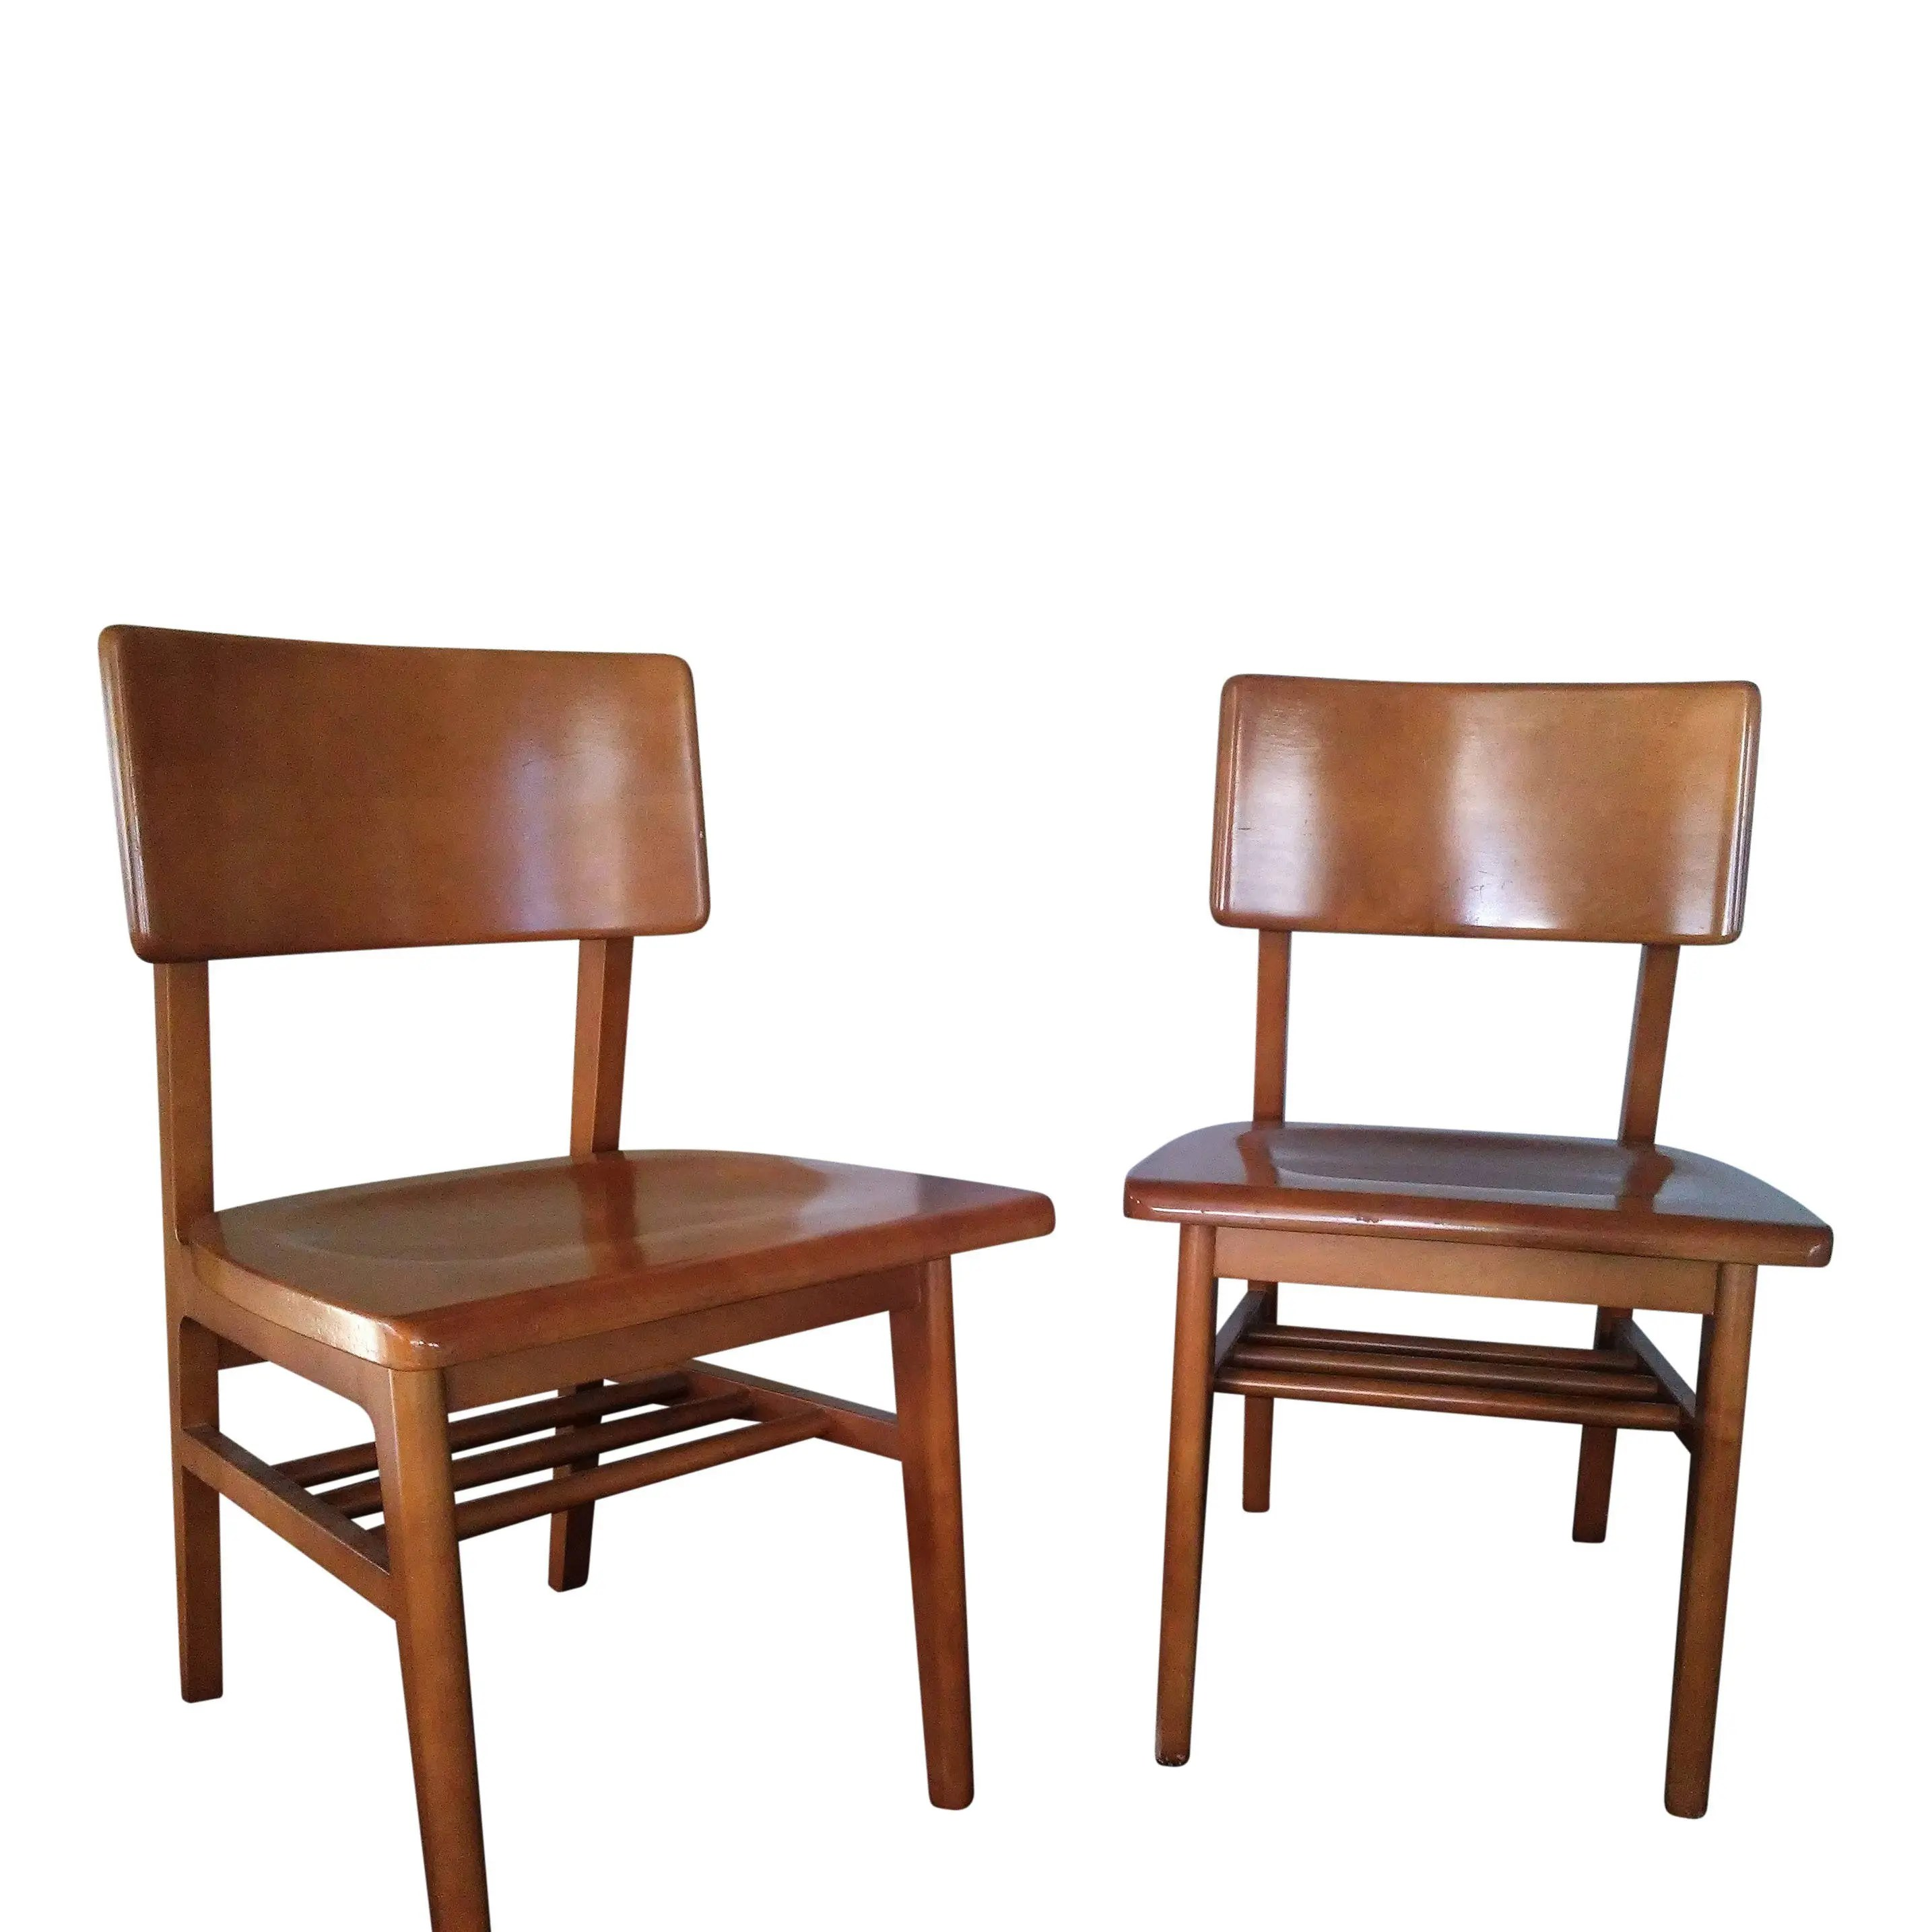 wh gunlocke chair wedding covers gloucester etsy vintage mid century modern desk chairs danish style made by shipping included